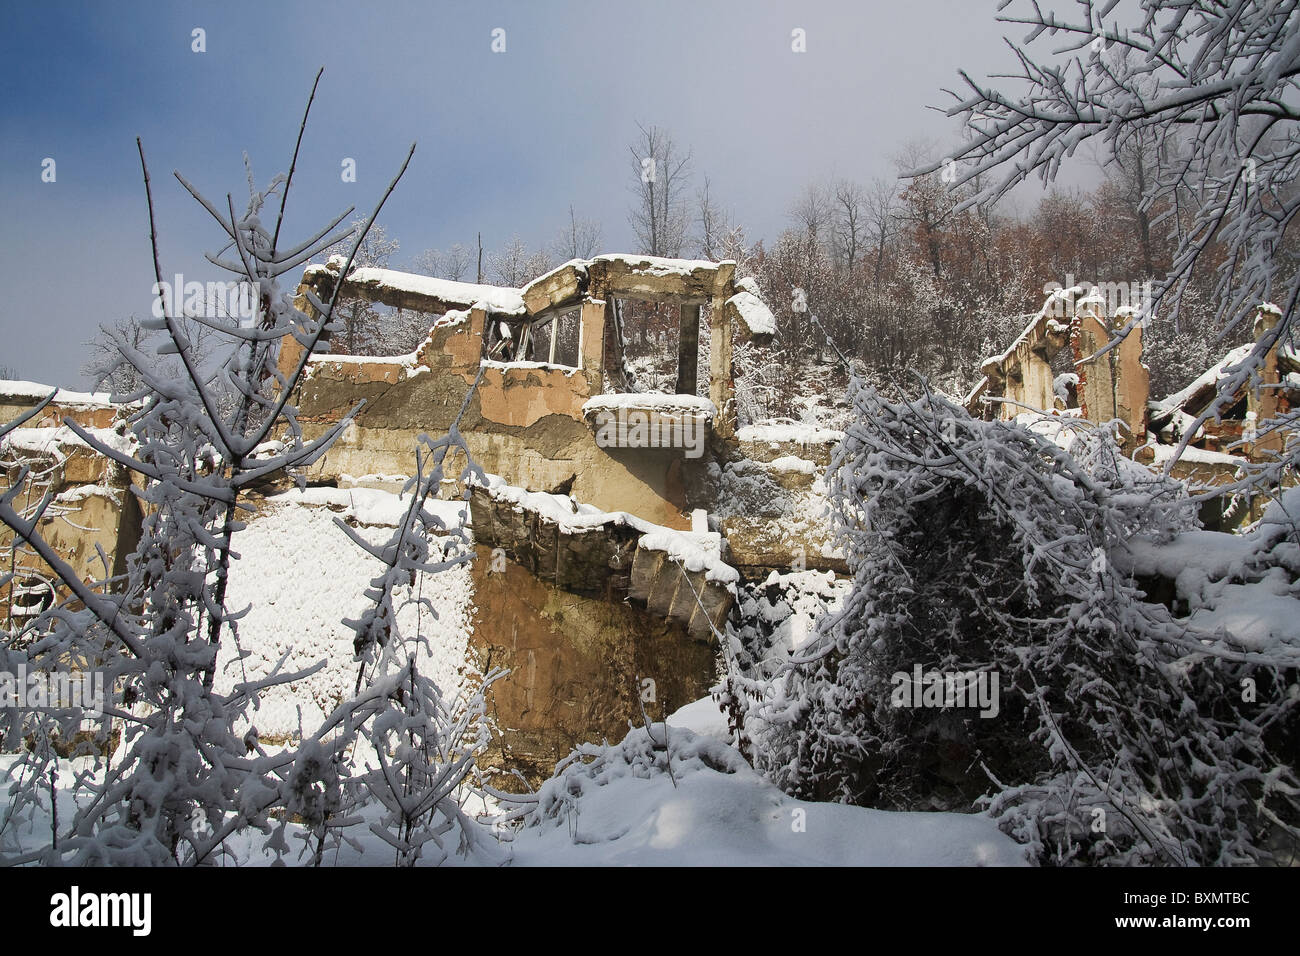 A building in Germia Park, a public area outside Prishtina in Kosovo, destroyed during the 1999 conflict with Serbia. Stock Photo